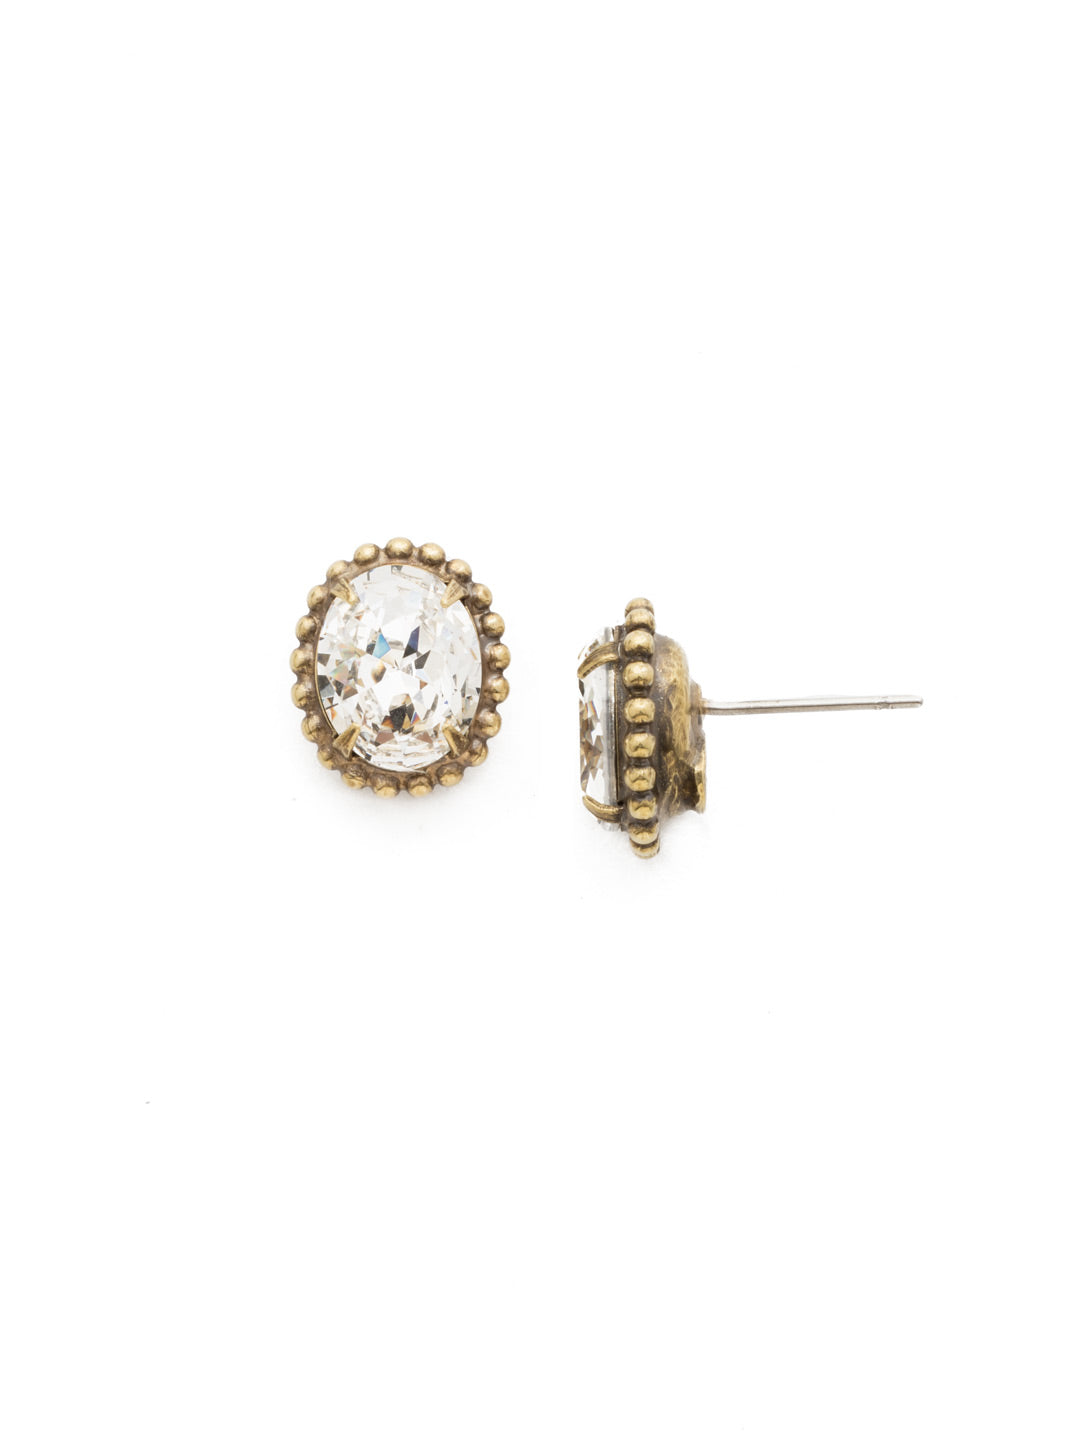 Oval-Cut Solitaire Stud Earrings - EDQ10AGCRY